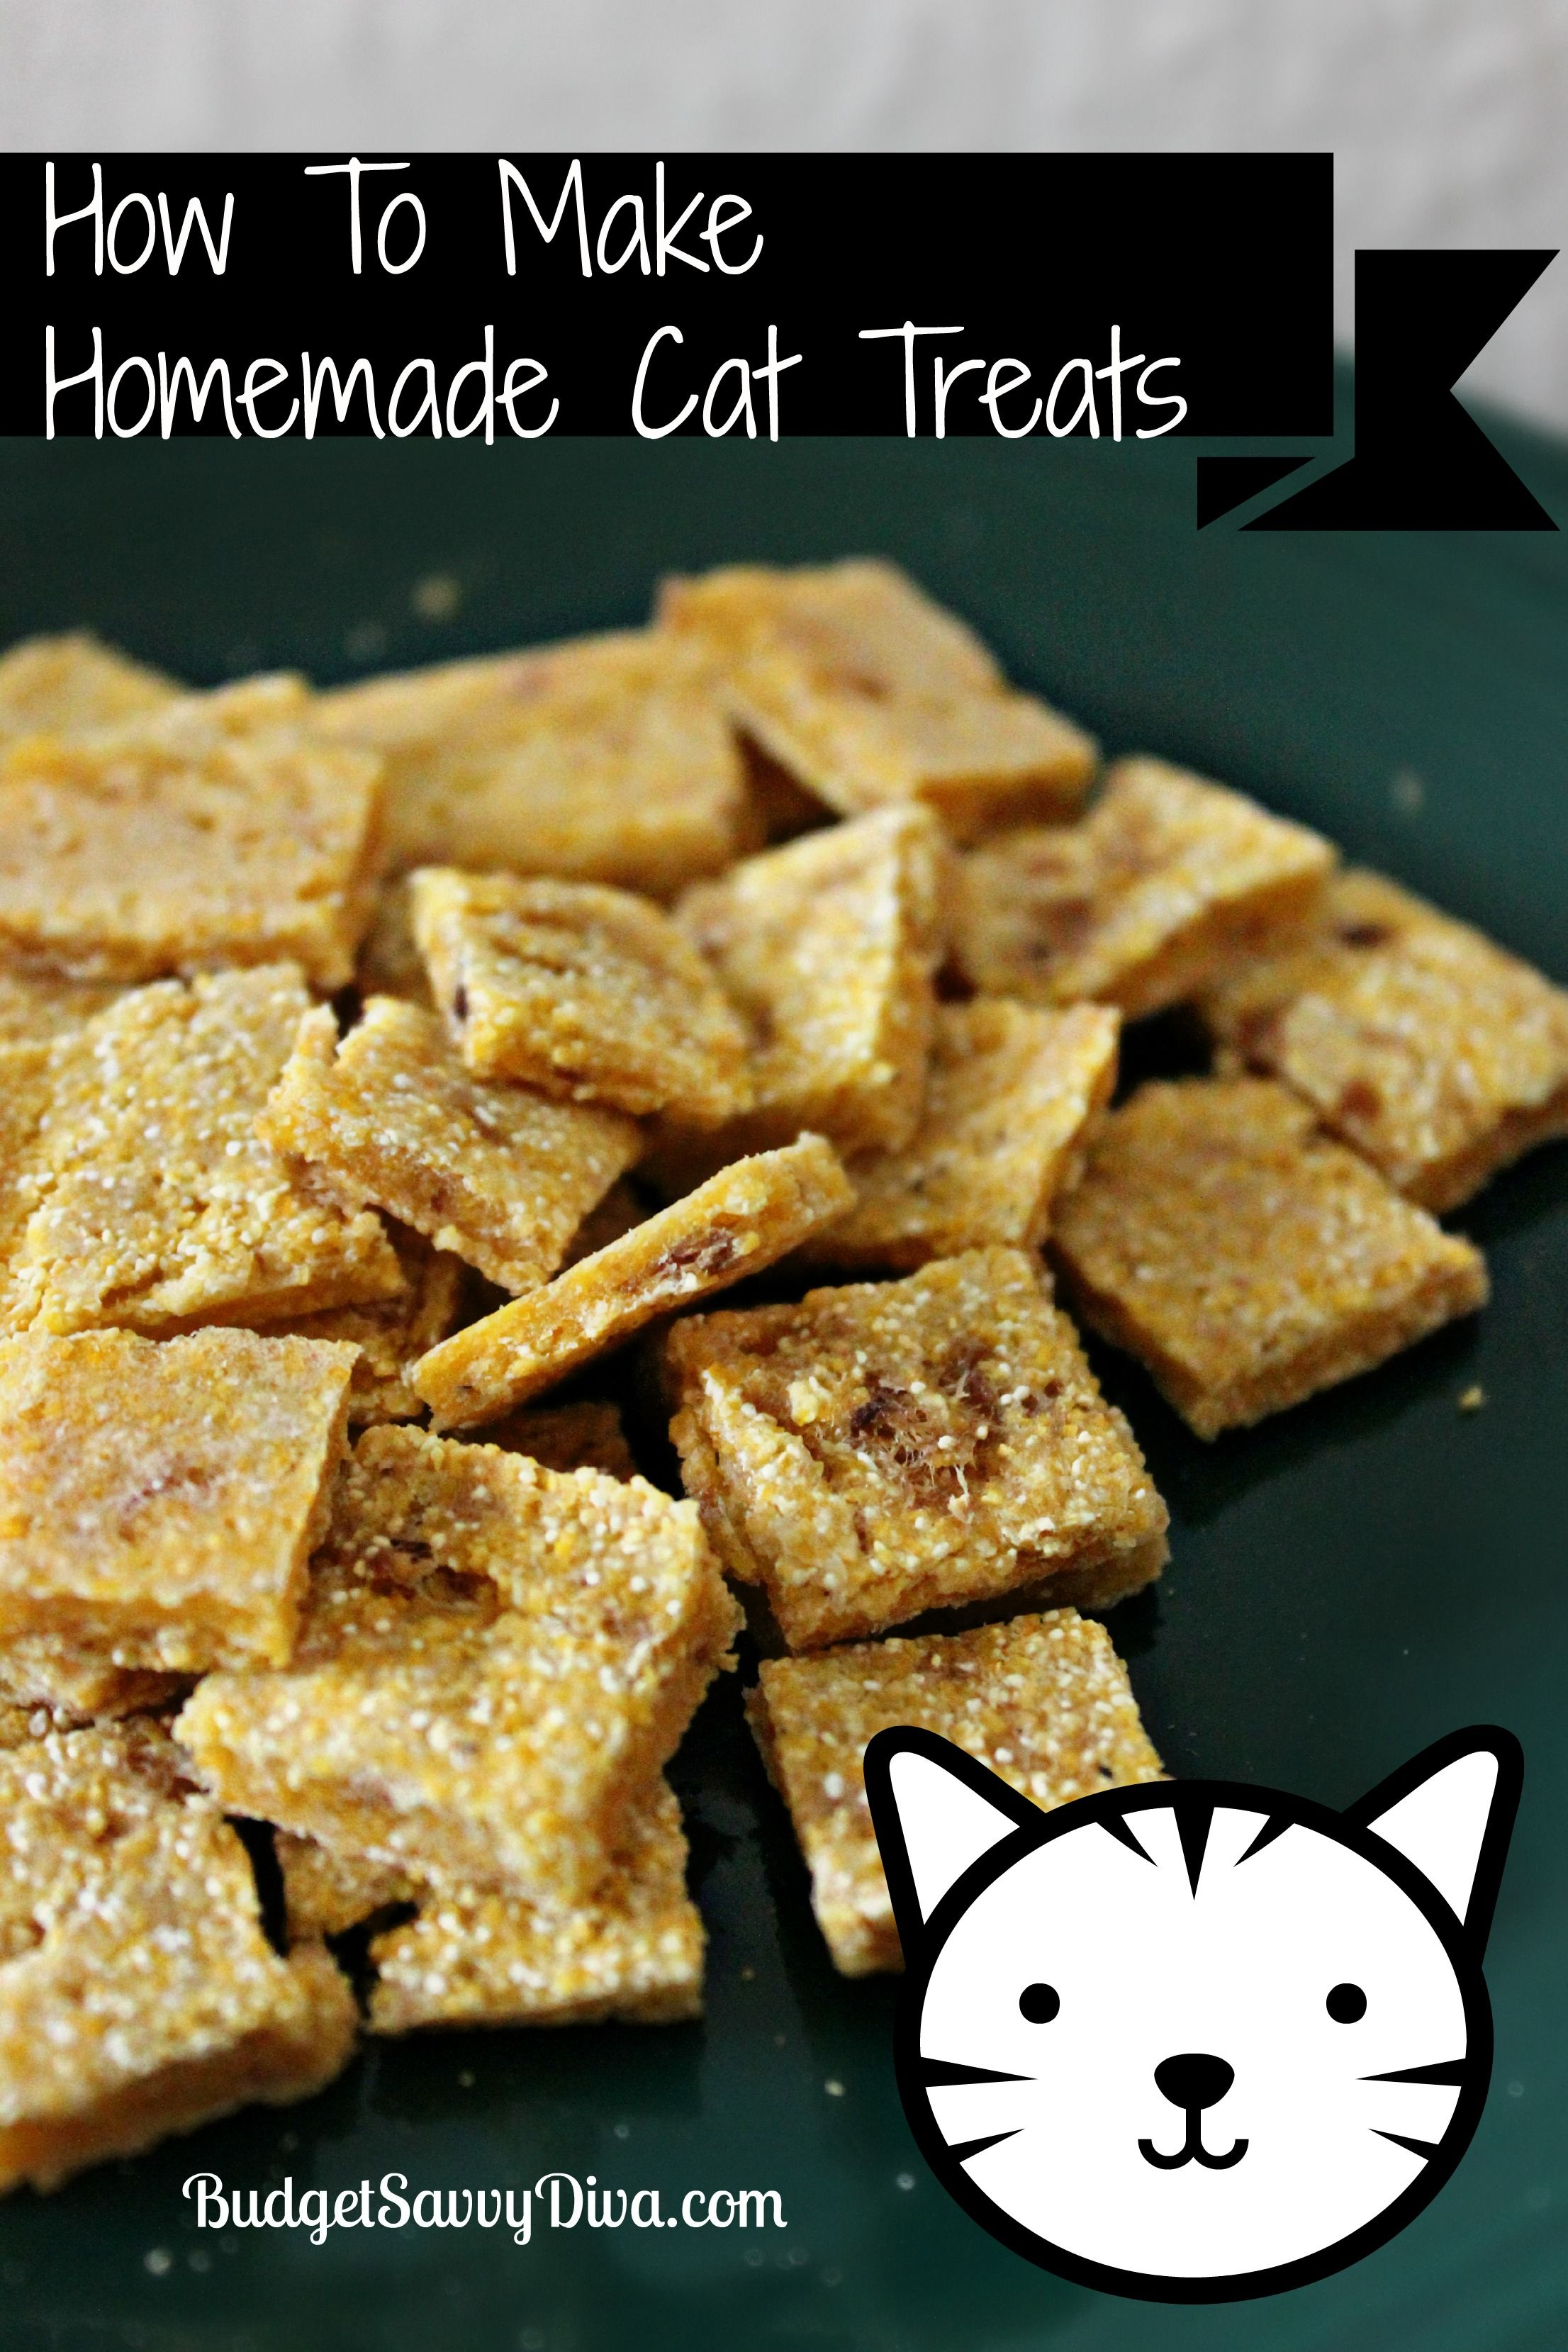 What You Need 6 Ounces Undrained Tuna 1 Cup Cornmeal Flour 3 Of Water To Do Preheat The Oven 350 Place All Ings In A Bowl